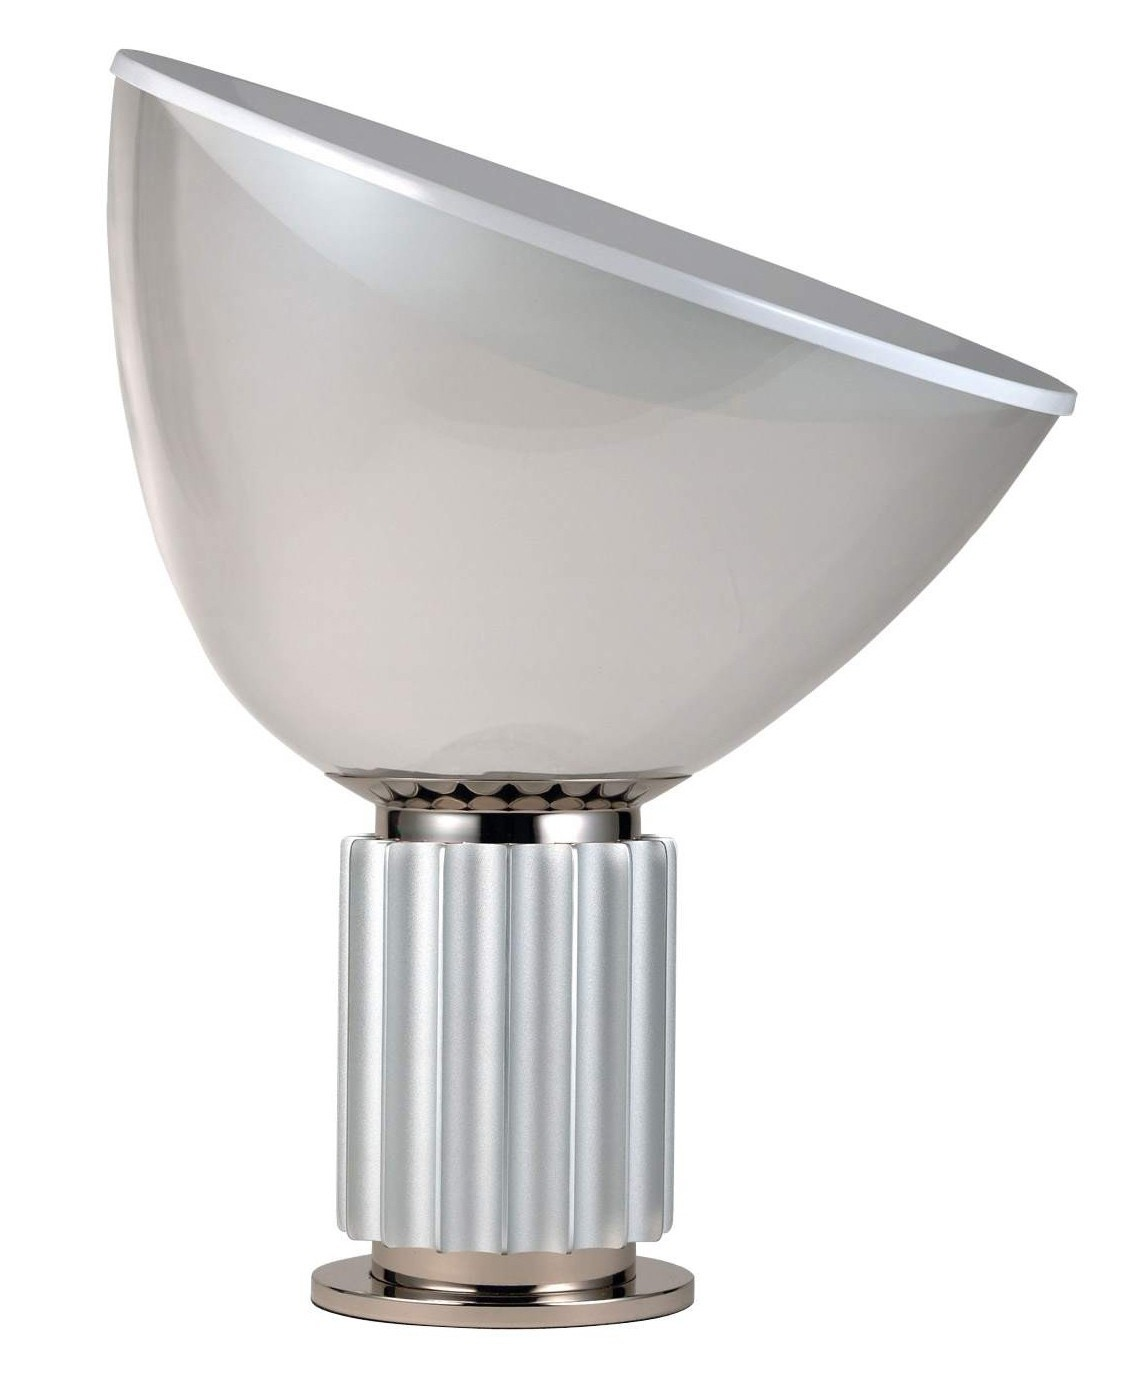 Flos Taccia Table Lamp with Methacrylate Diffuser